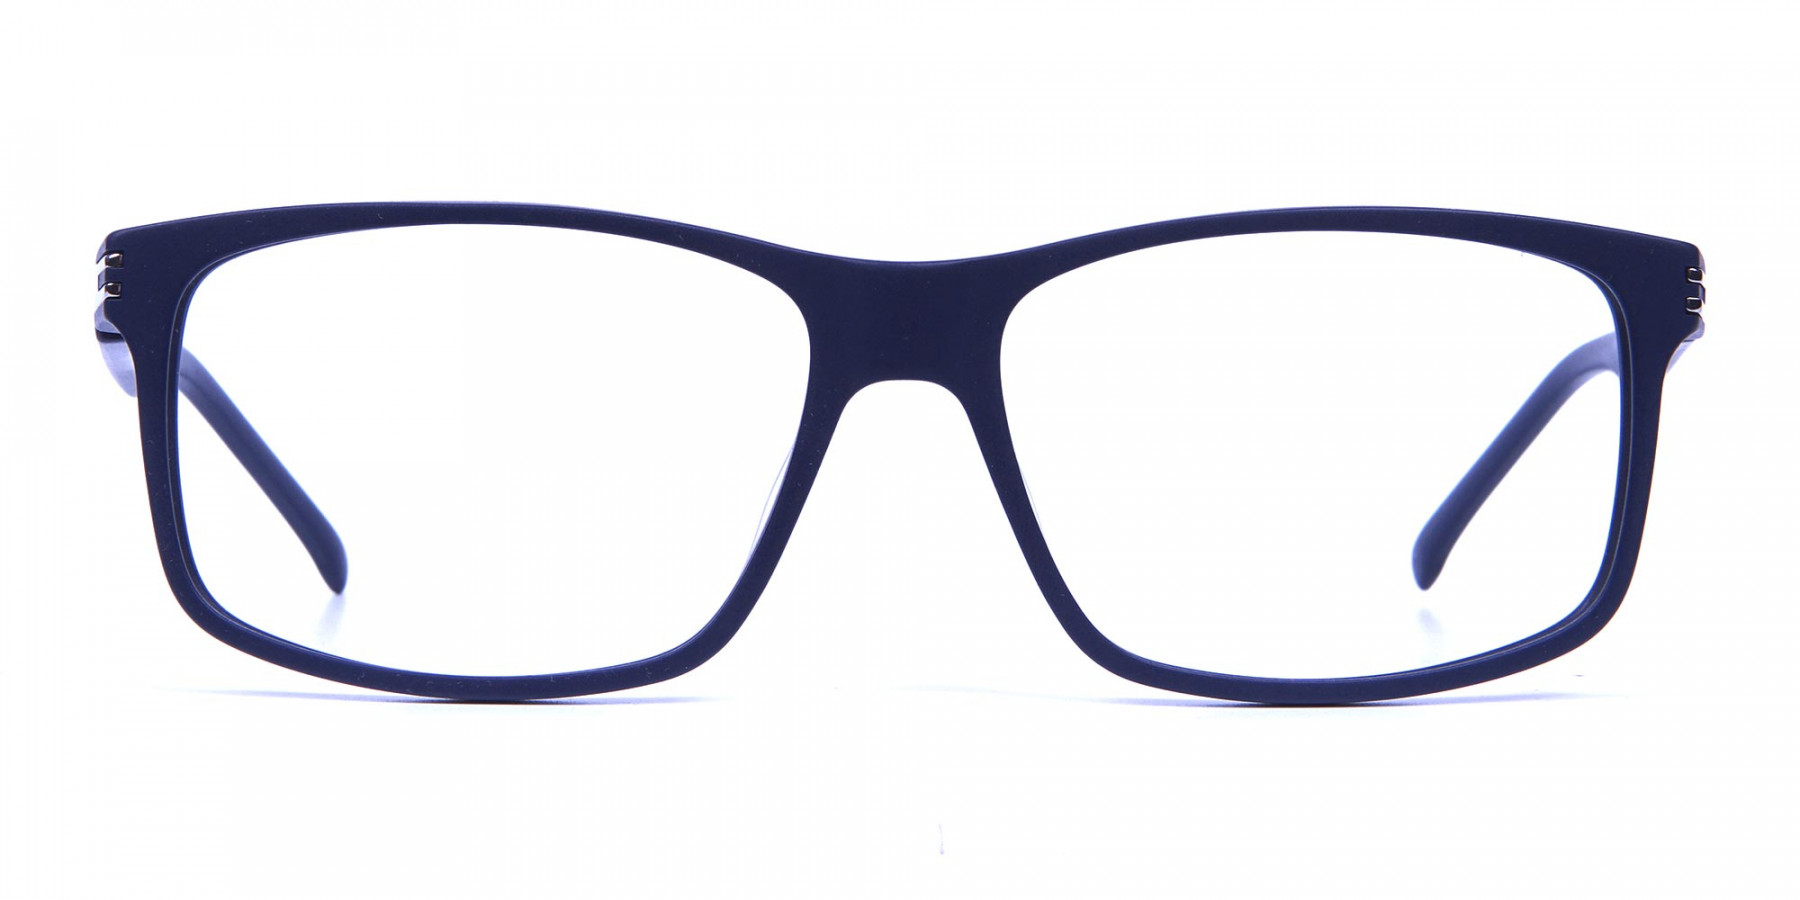 Light Weight Detail Crafted Glasses in Blue